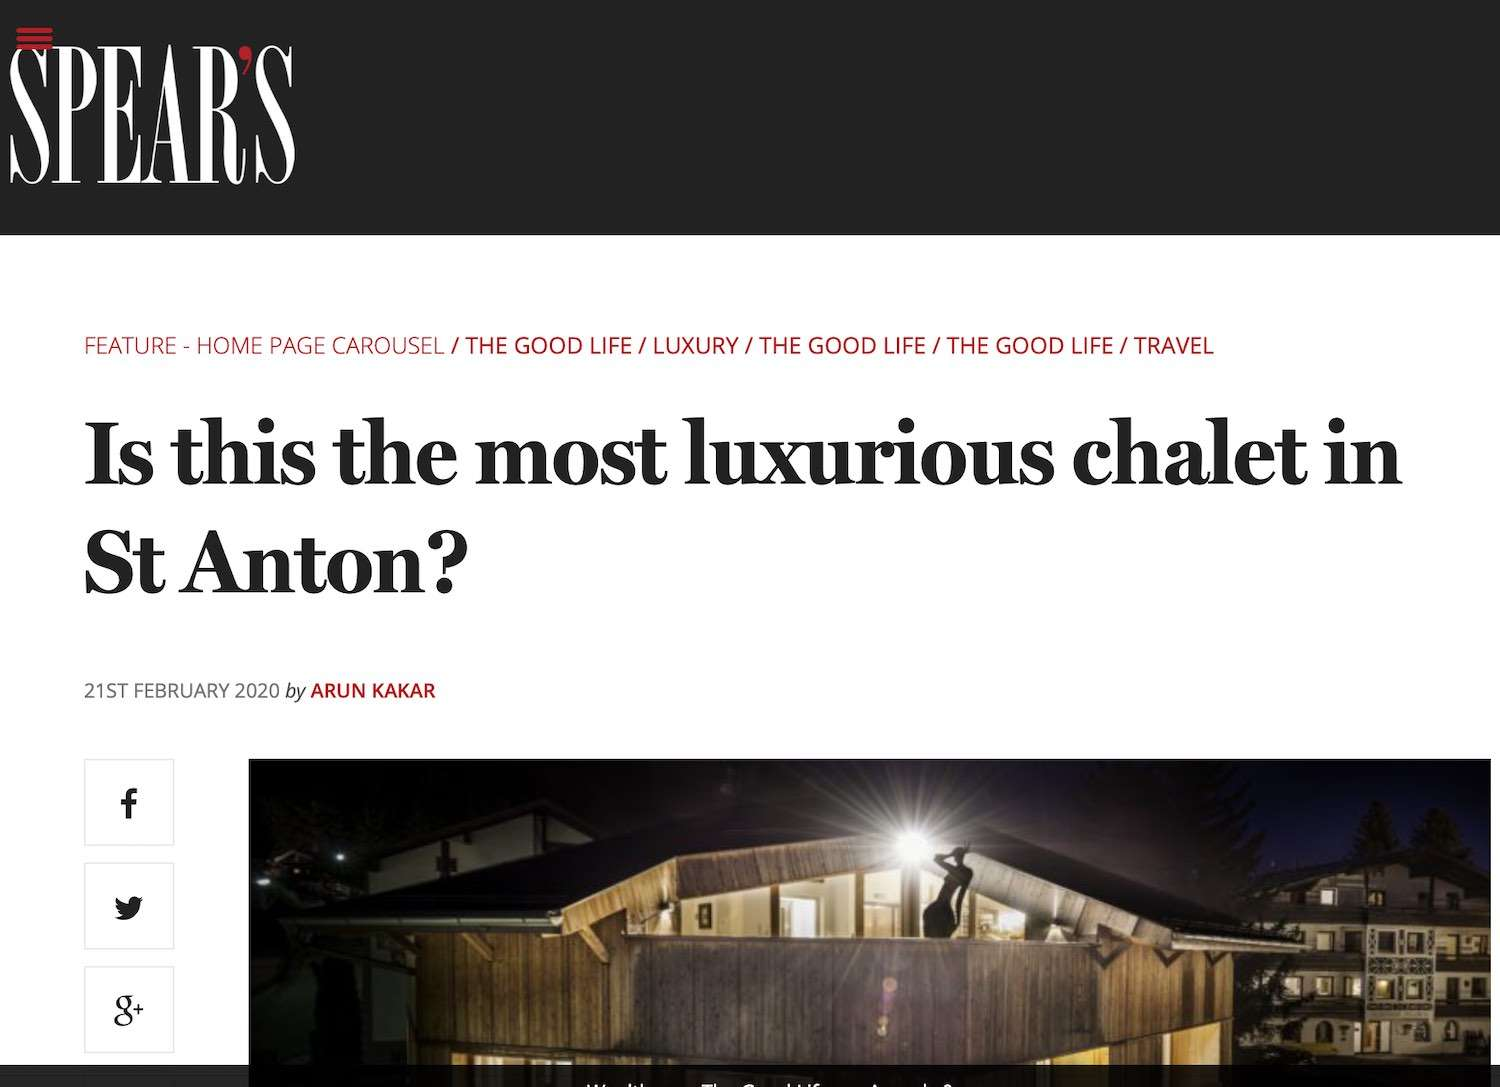 Is this the most luxurious chalet in St Anton - Spears